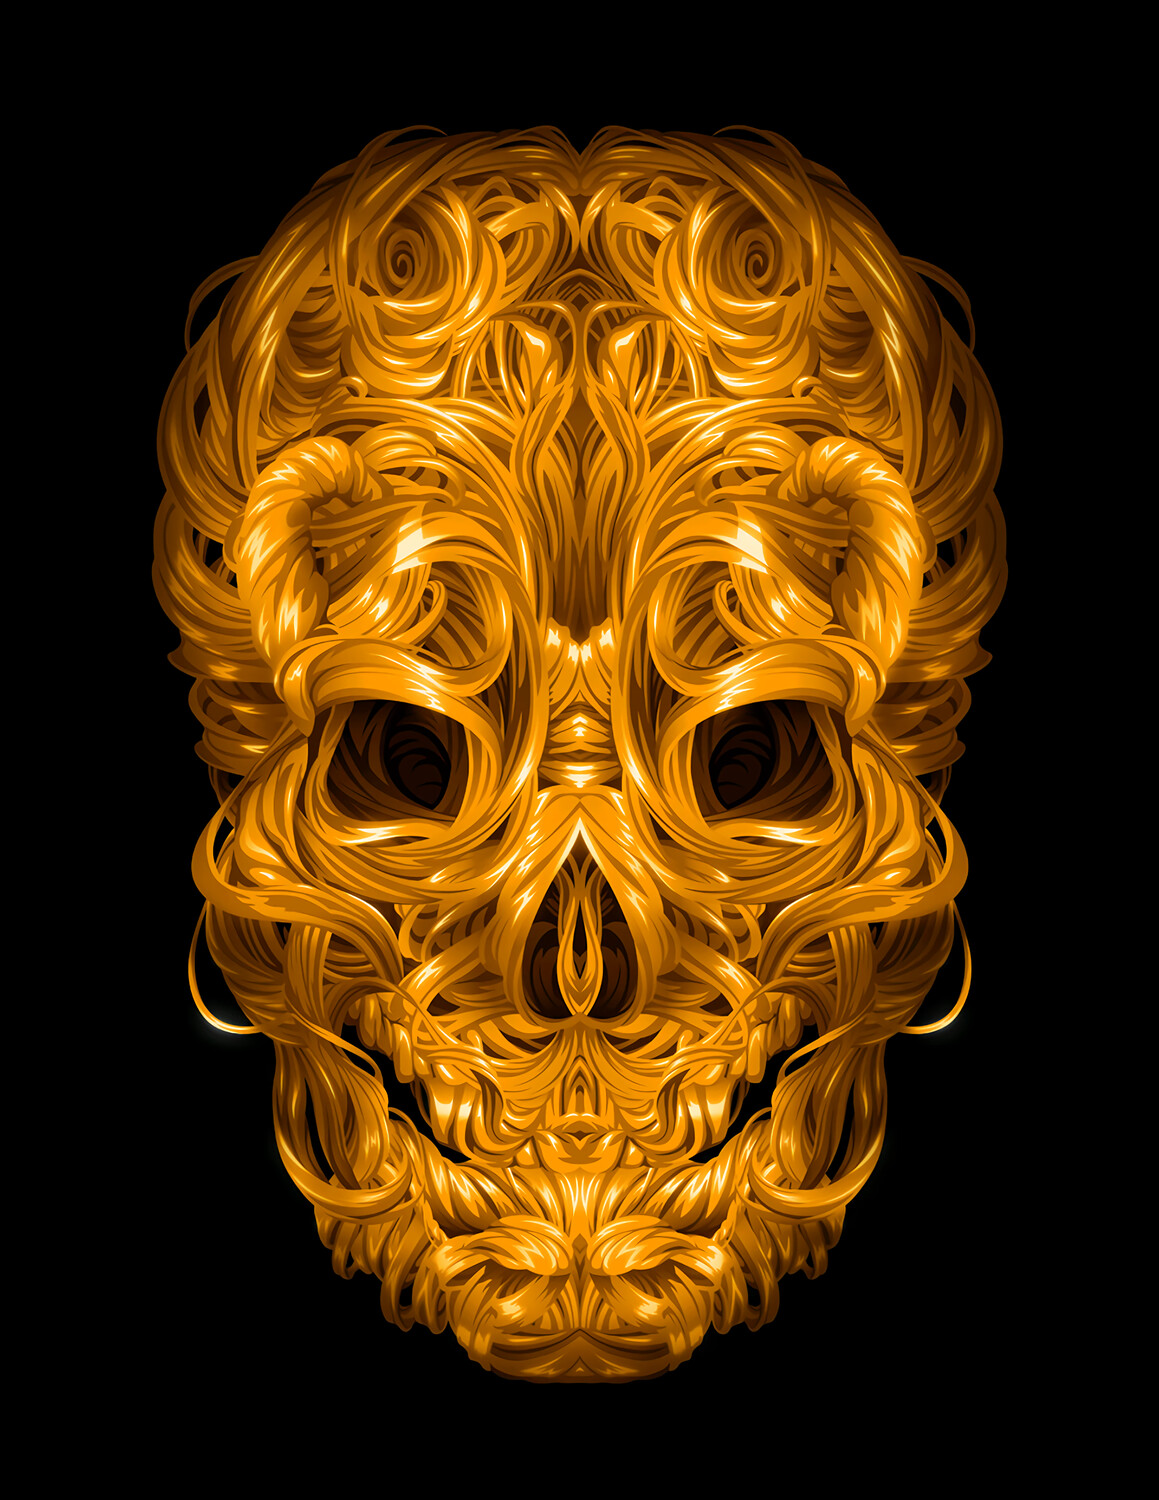 Skull 06 - Full Drill Diamond Painting - Specially ordered for you. Delivery is approximately 4 - 6 weeks.